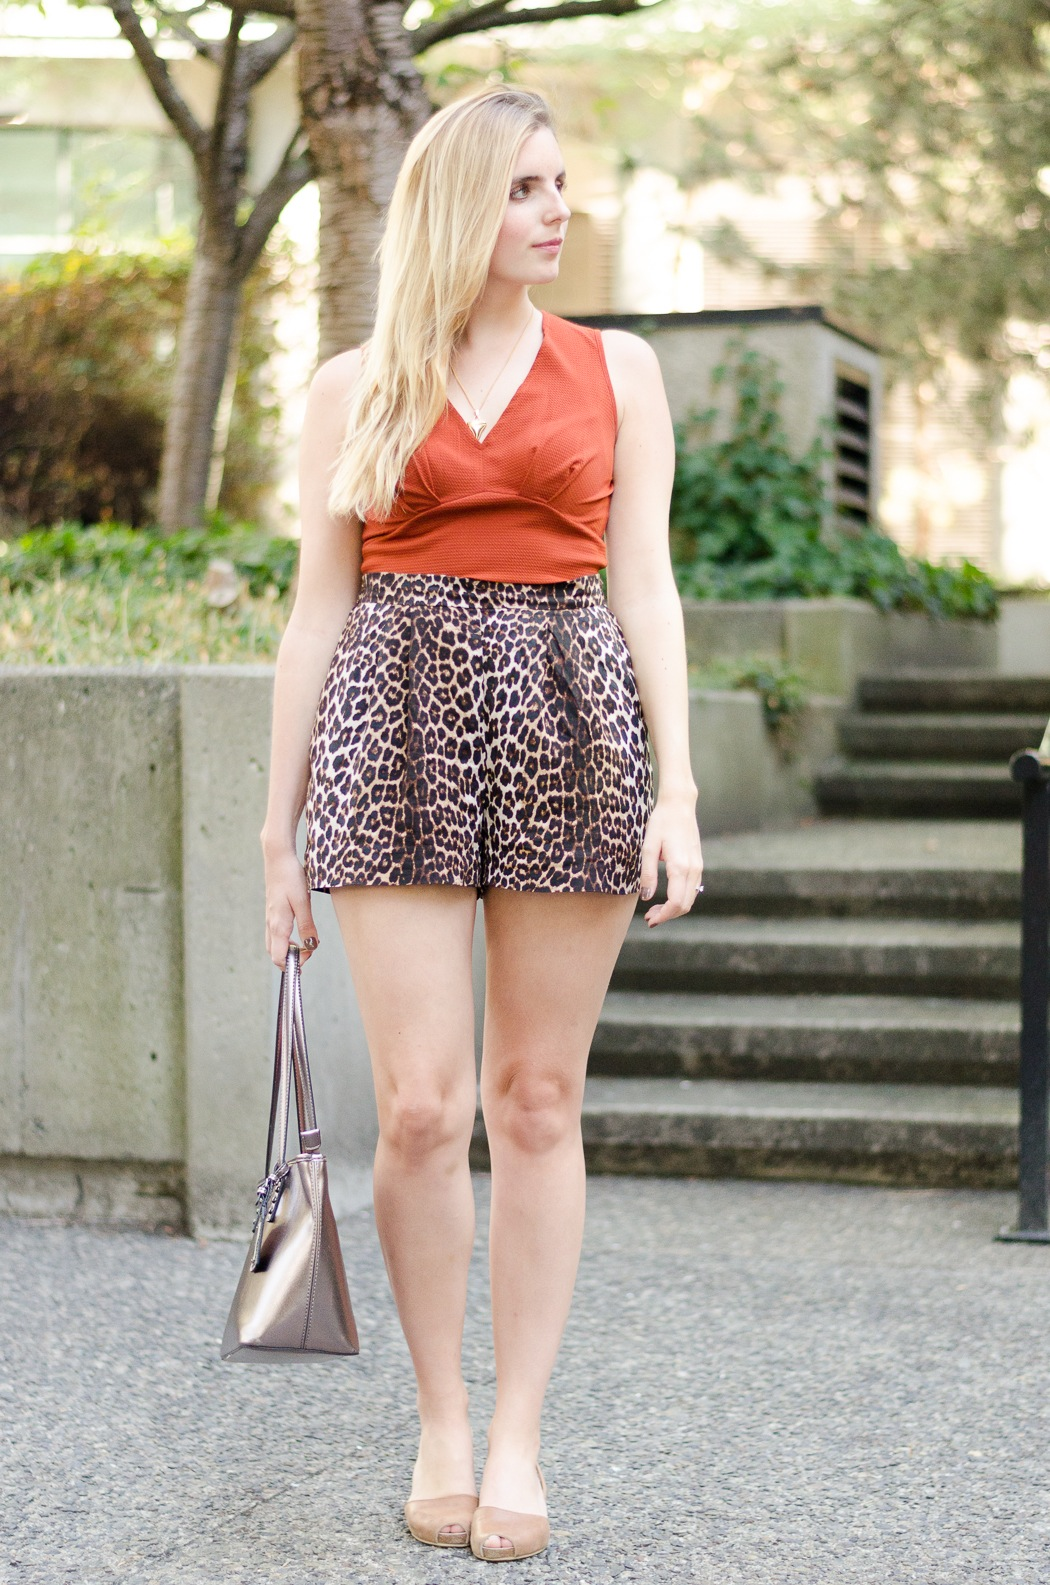 the urban umbrella style blog, vancouver style blog, vancouver fashion blog, vancouver lifestyle blog, vancouver health blog, vancouver fitness blog, vancouver travel blog, canadian faashion blog, canadian style blog, canadian lifestyle blog, canadian health blog, canadian fitness blog, canadian travel blog, bree aylwin, how to style high waist shorts, hm canada high waist shorts, leopard shorts, how to style a crop top, orange crop top, nobis and grey necklace, ella shoe sandals, aldo metallic handbag, cute summer outfit ideas, favourite winery vancouver, best lifestyle blogs, best fitness blogs, best health blogs, best travel blogs, top fashion blogs, top style blogs, top lifestyle blogs, top fitness blogs, top health blogs, top travel blogs